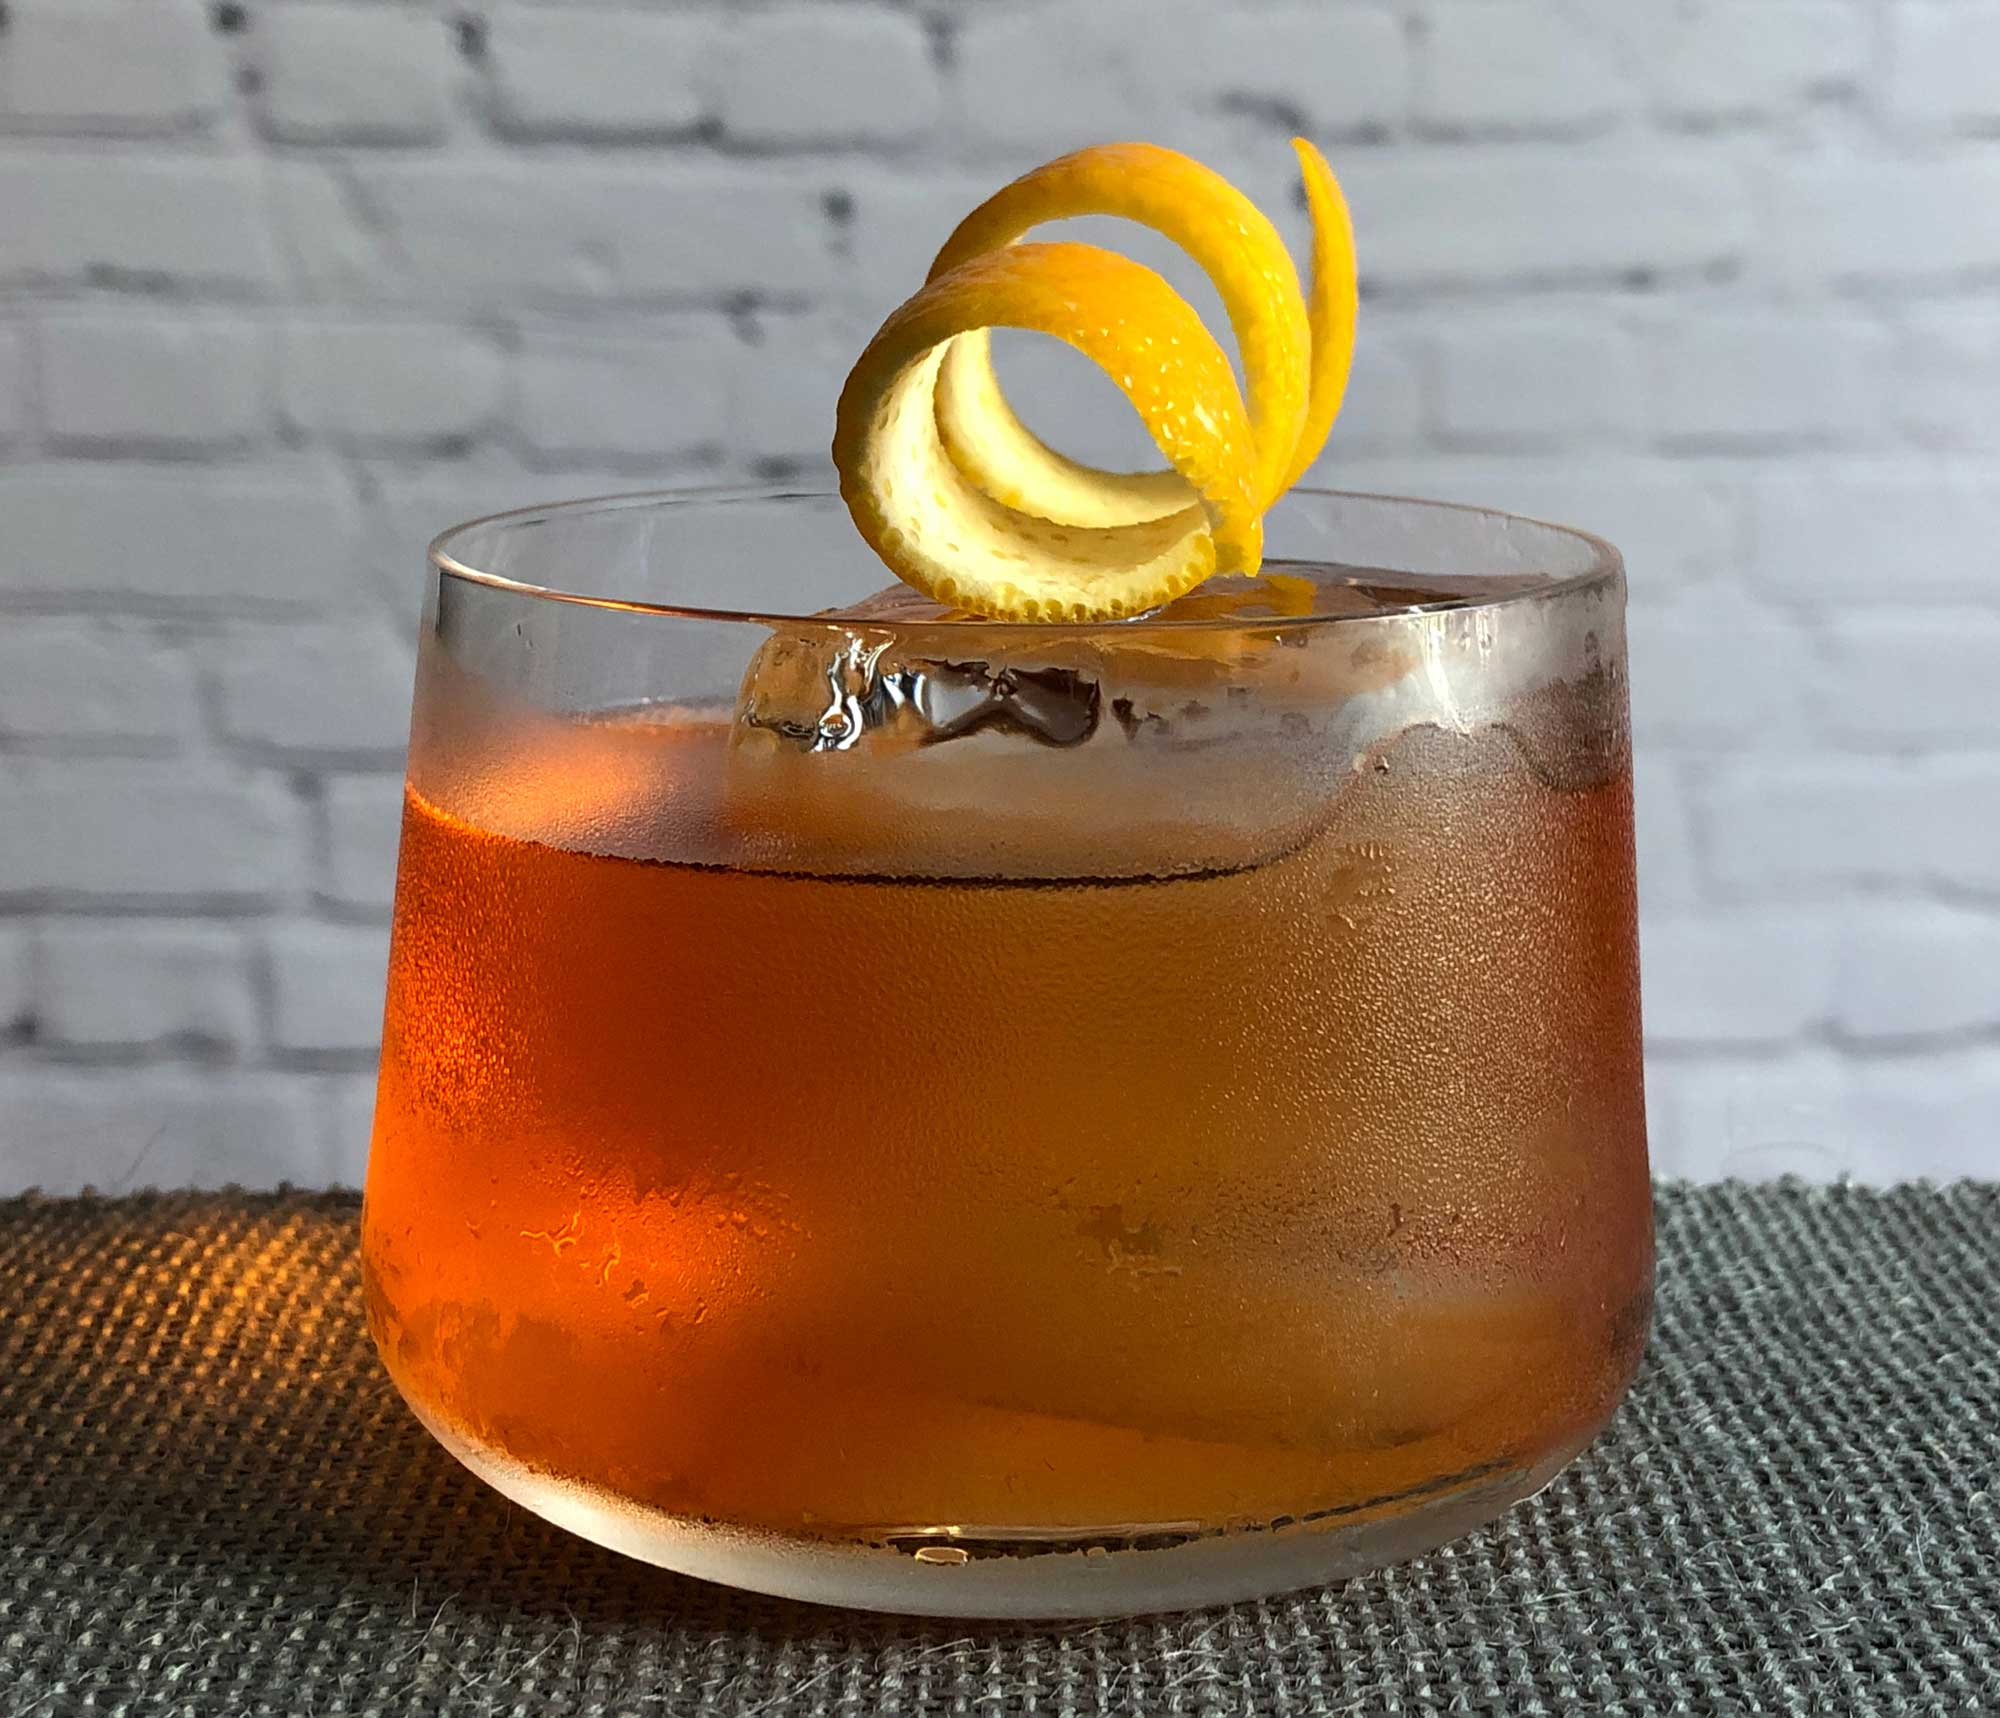 An example of the Old Pal, the mixed drink (cocktail) featuring bourbon whiskey, Aperitivo Cappelletti, and Dolin Dry Vermouth de Chambéry; photo by Lee Edwards